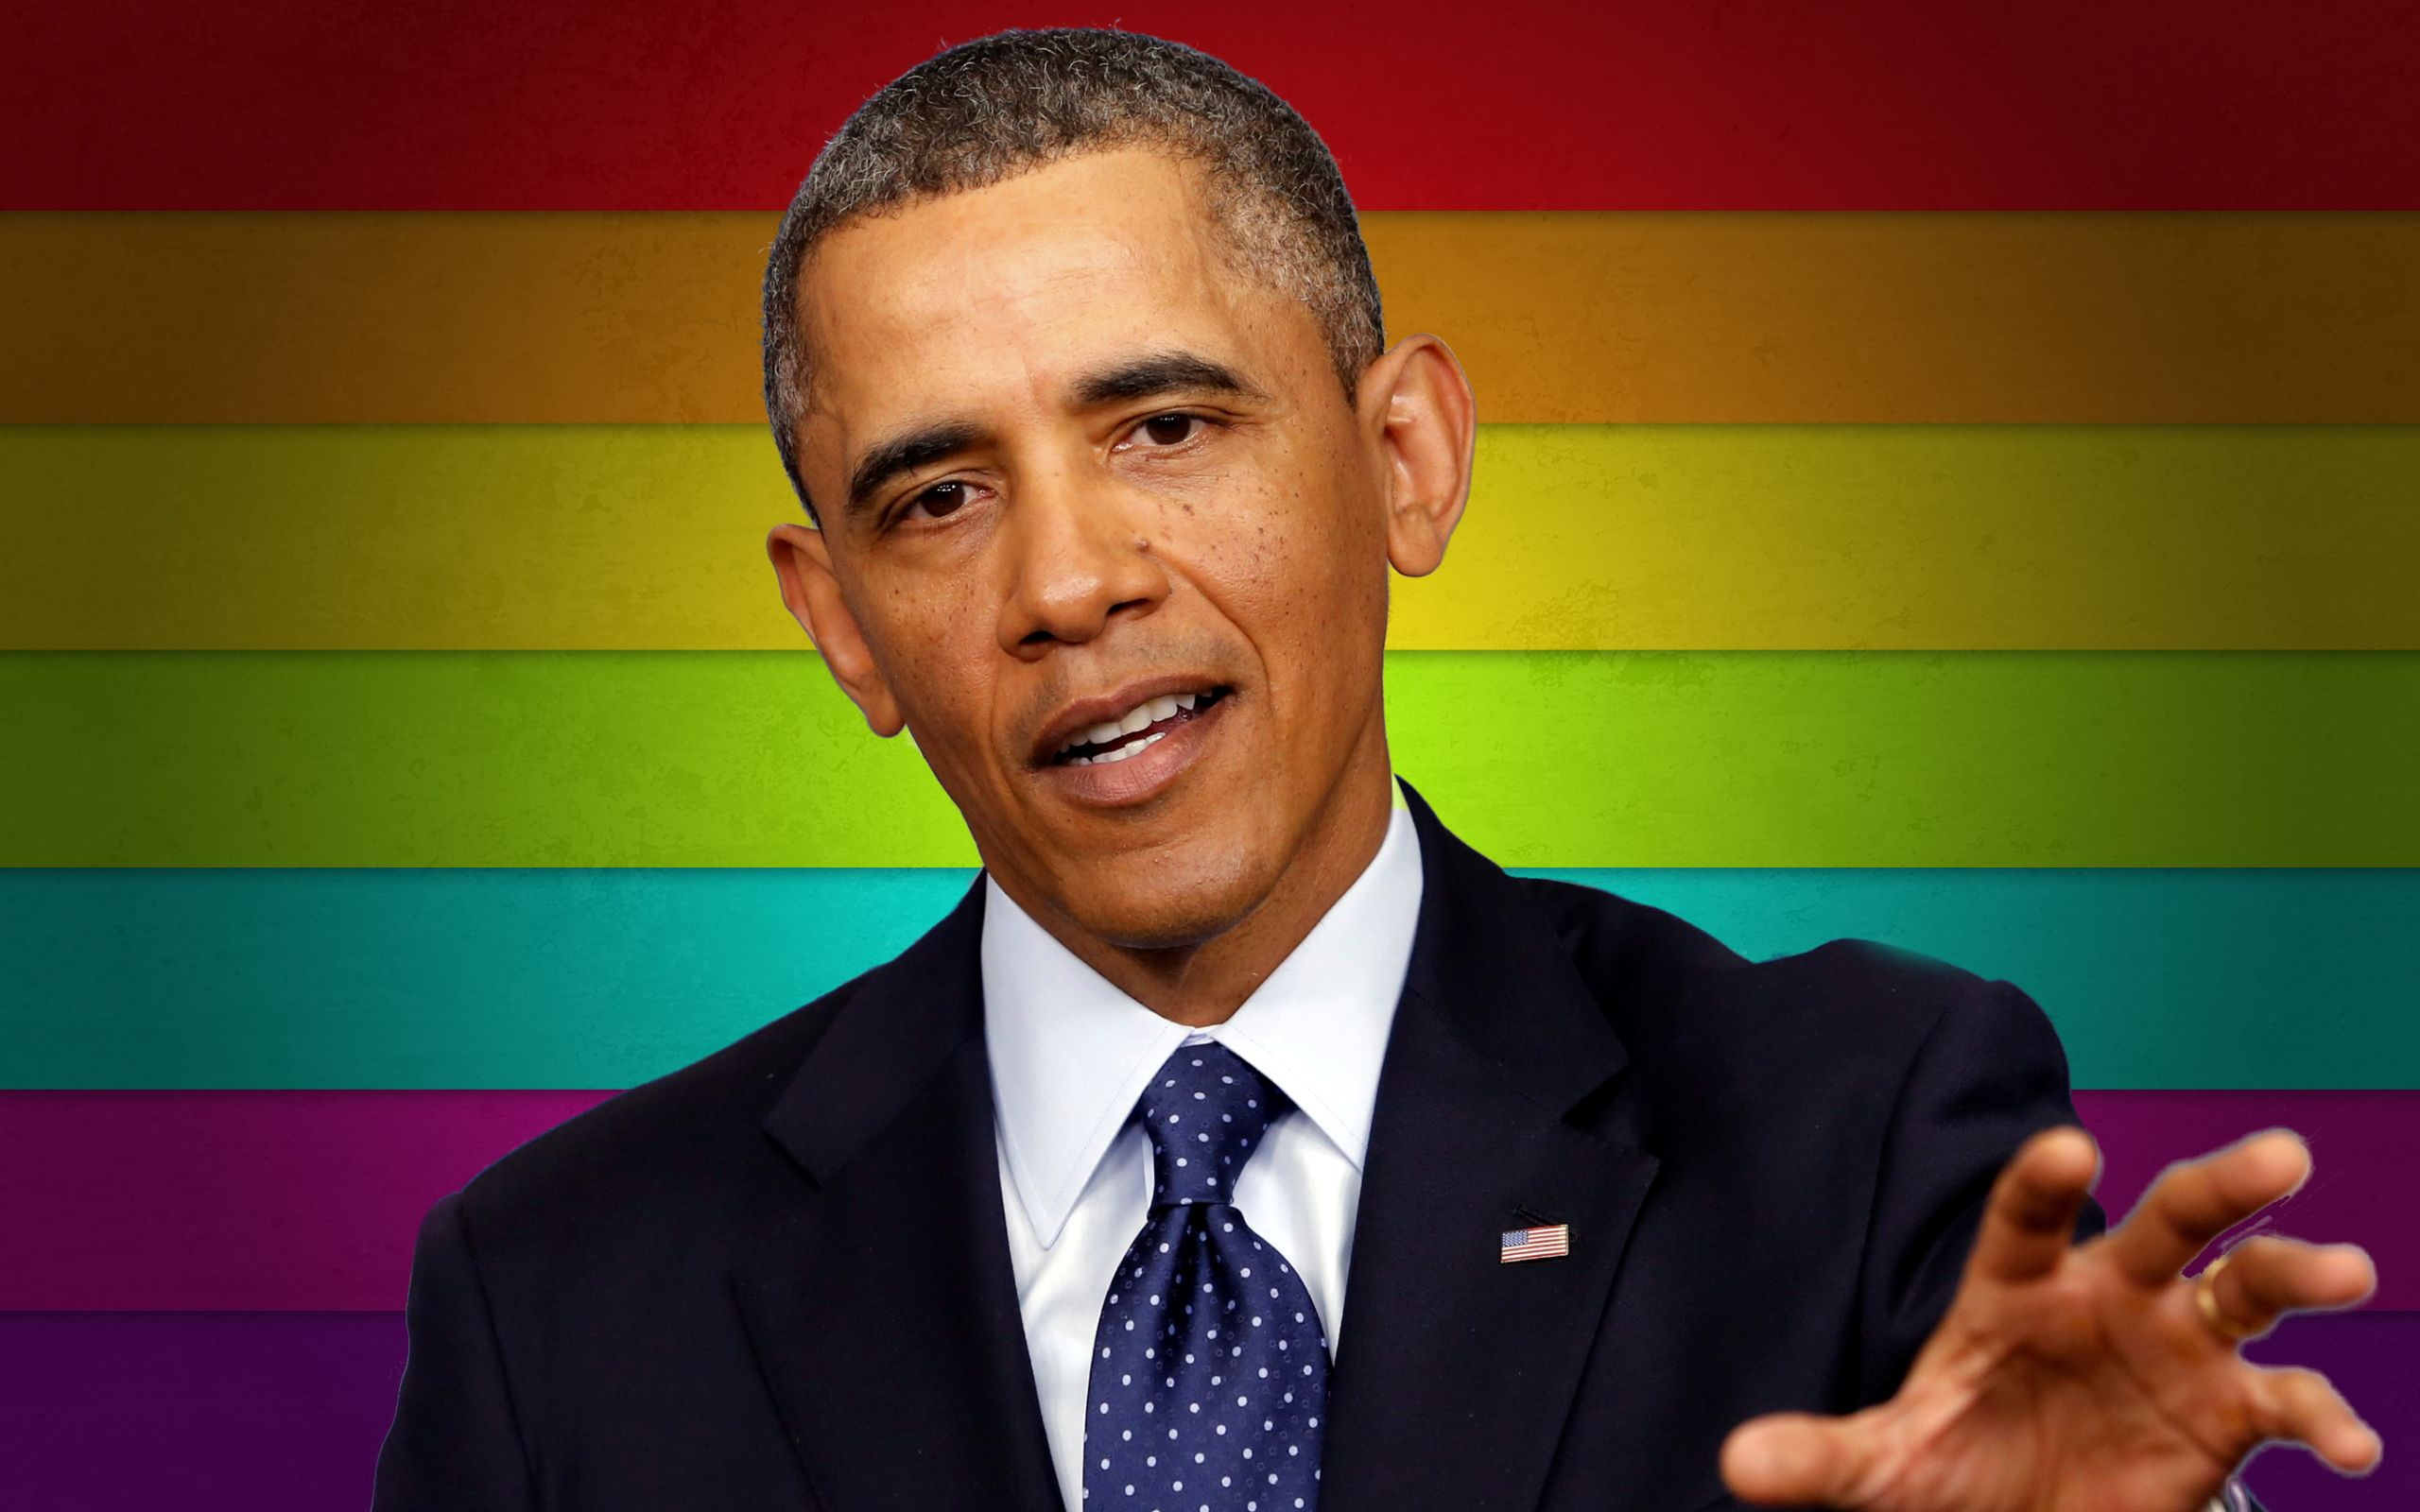 IS BARACK OBAMA GAY? - Real News From Real Patriots